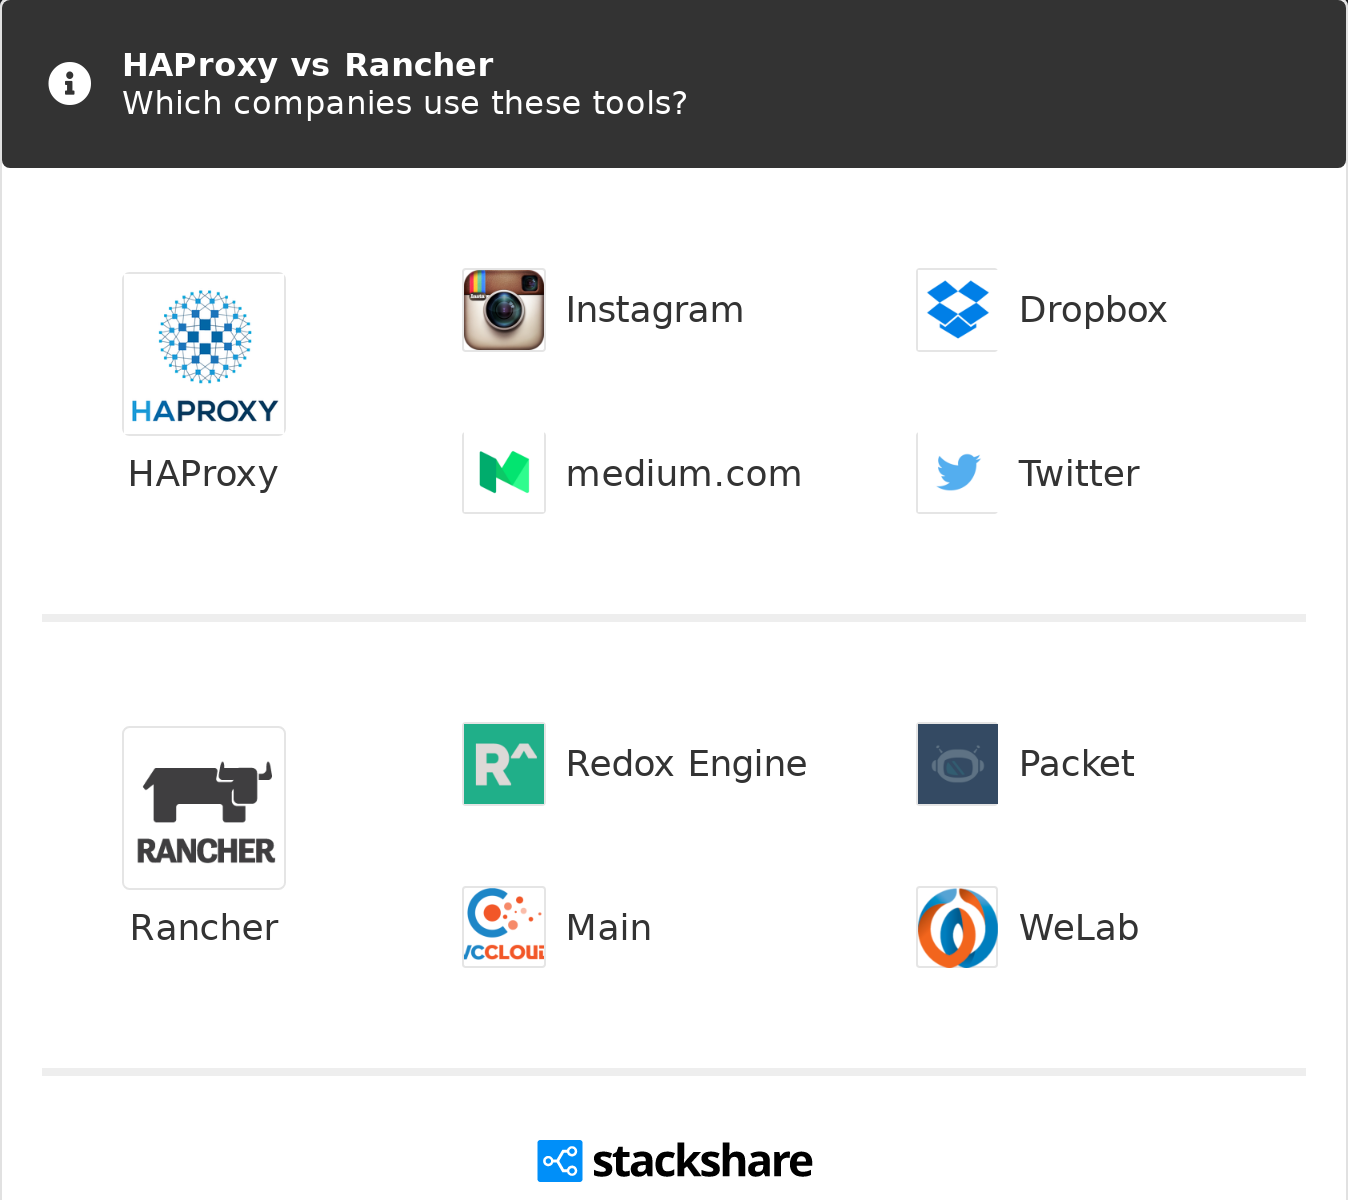 HAProxy vs Rancher | What are the differences?